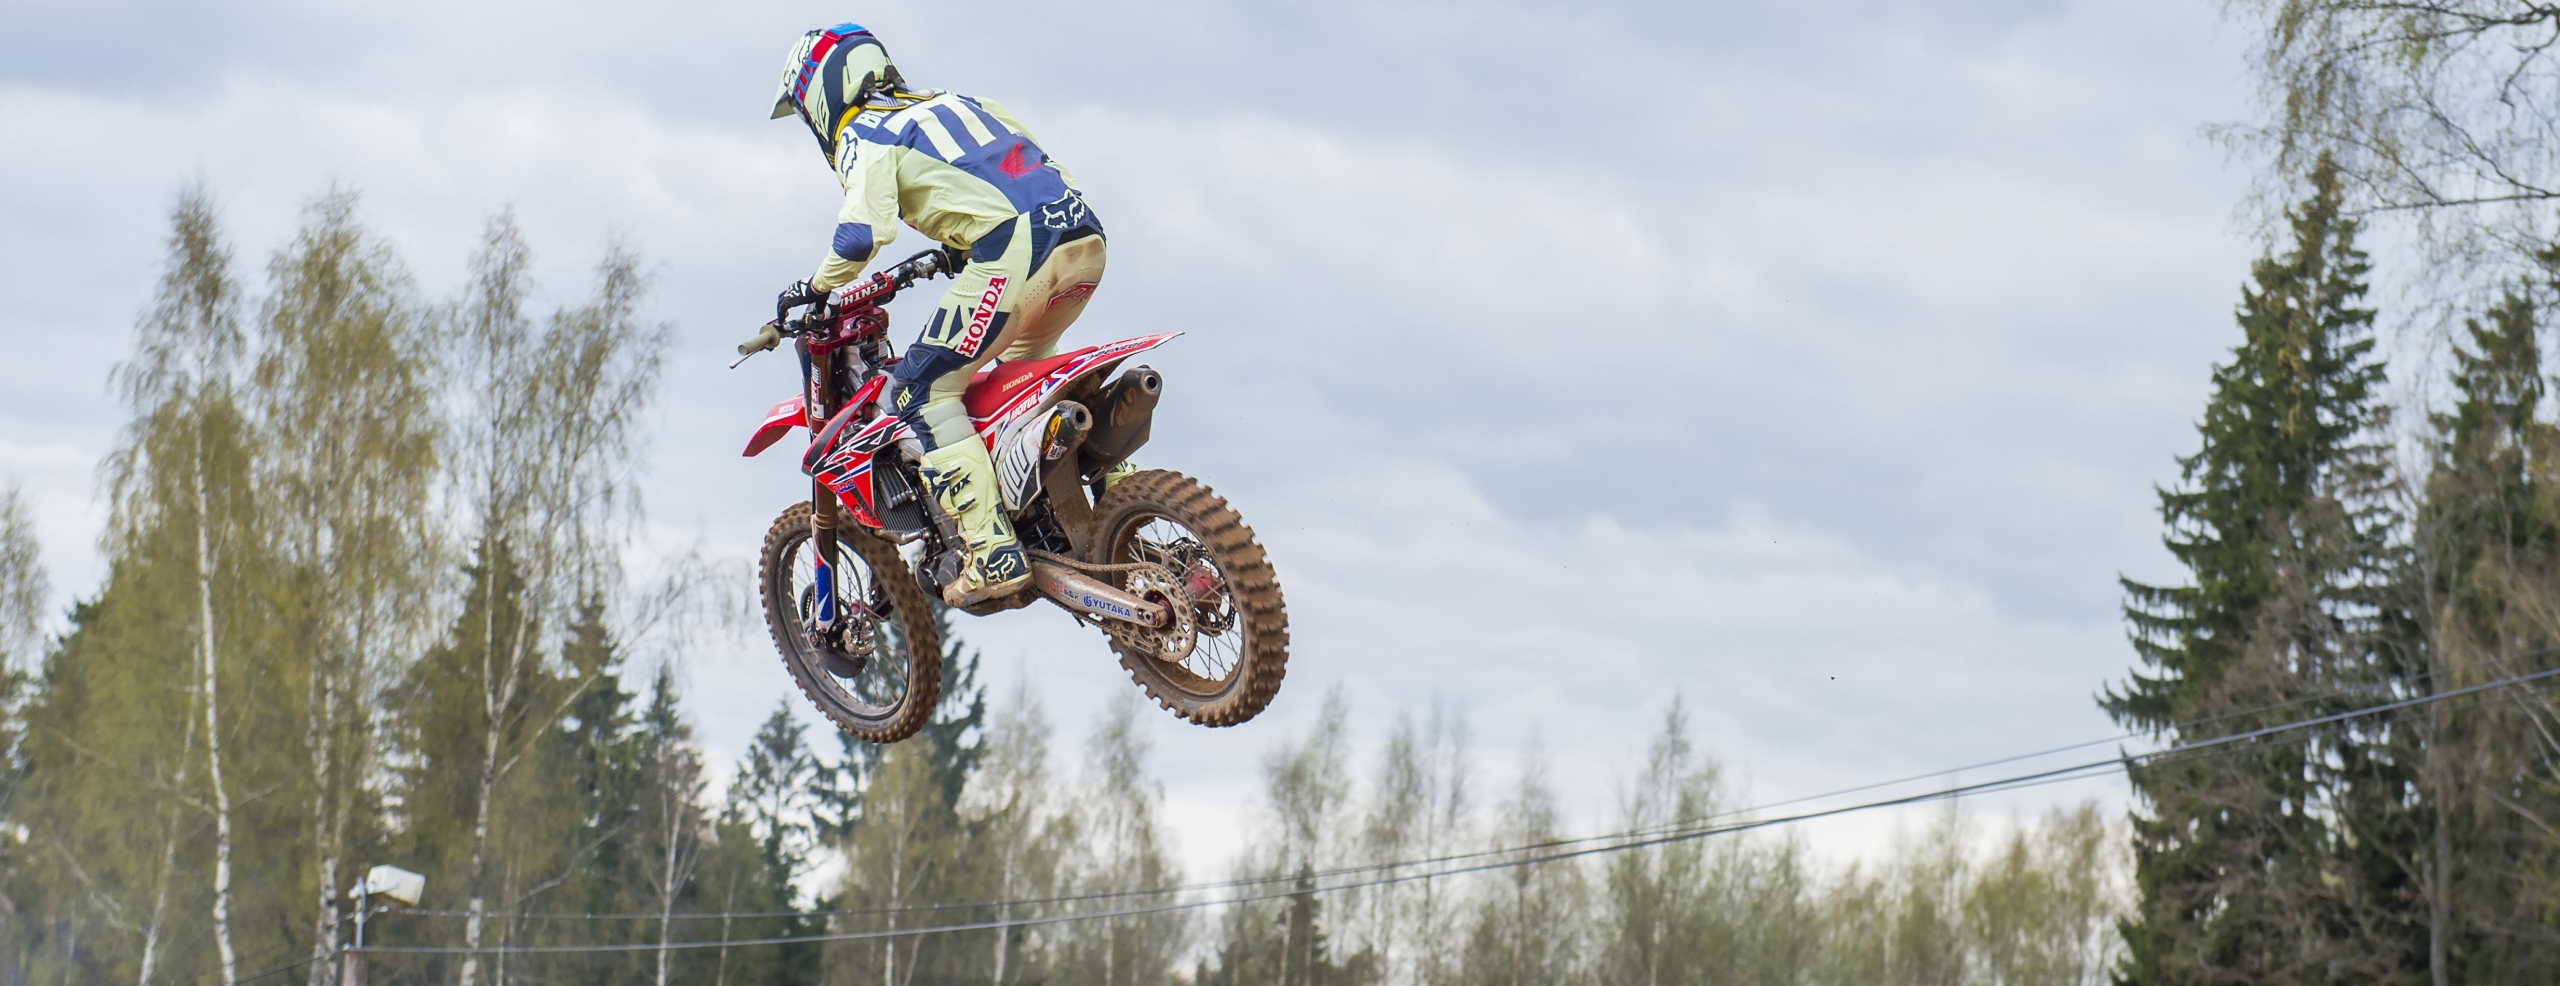 Gutsy recovery ride to sixth for Bobryshev in Latvia